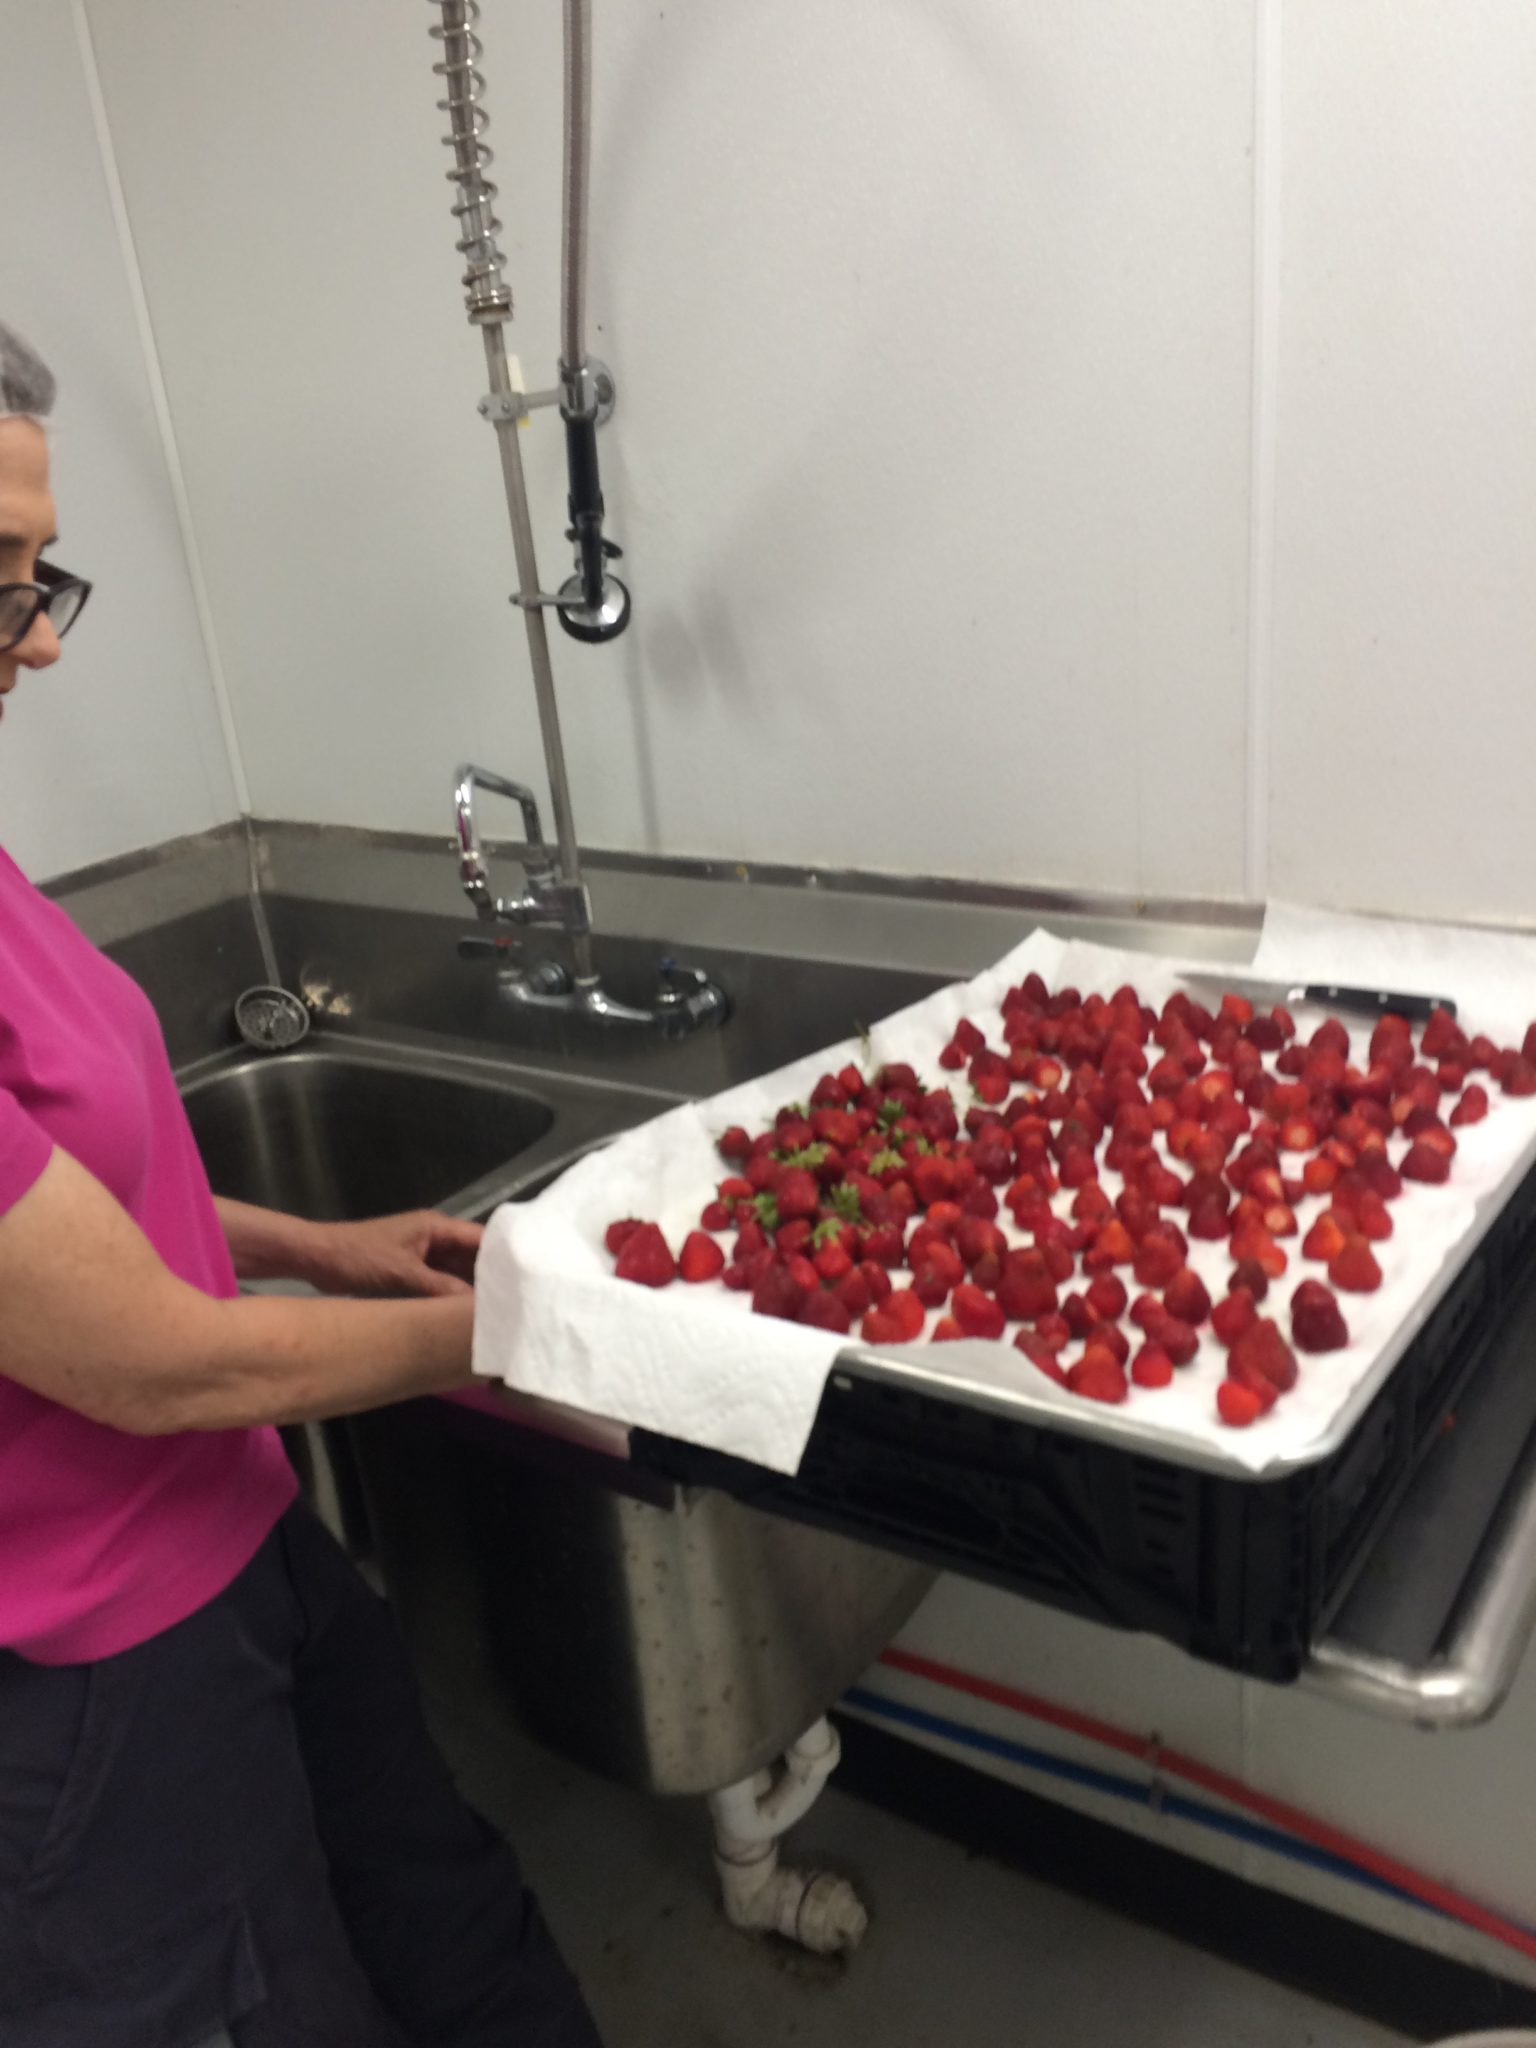 freezing strawberries on tray